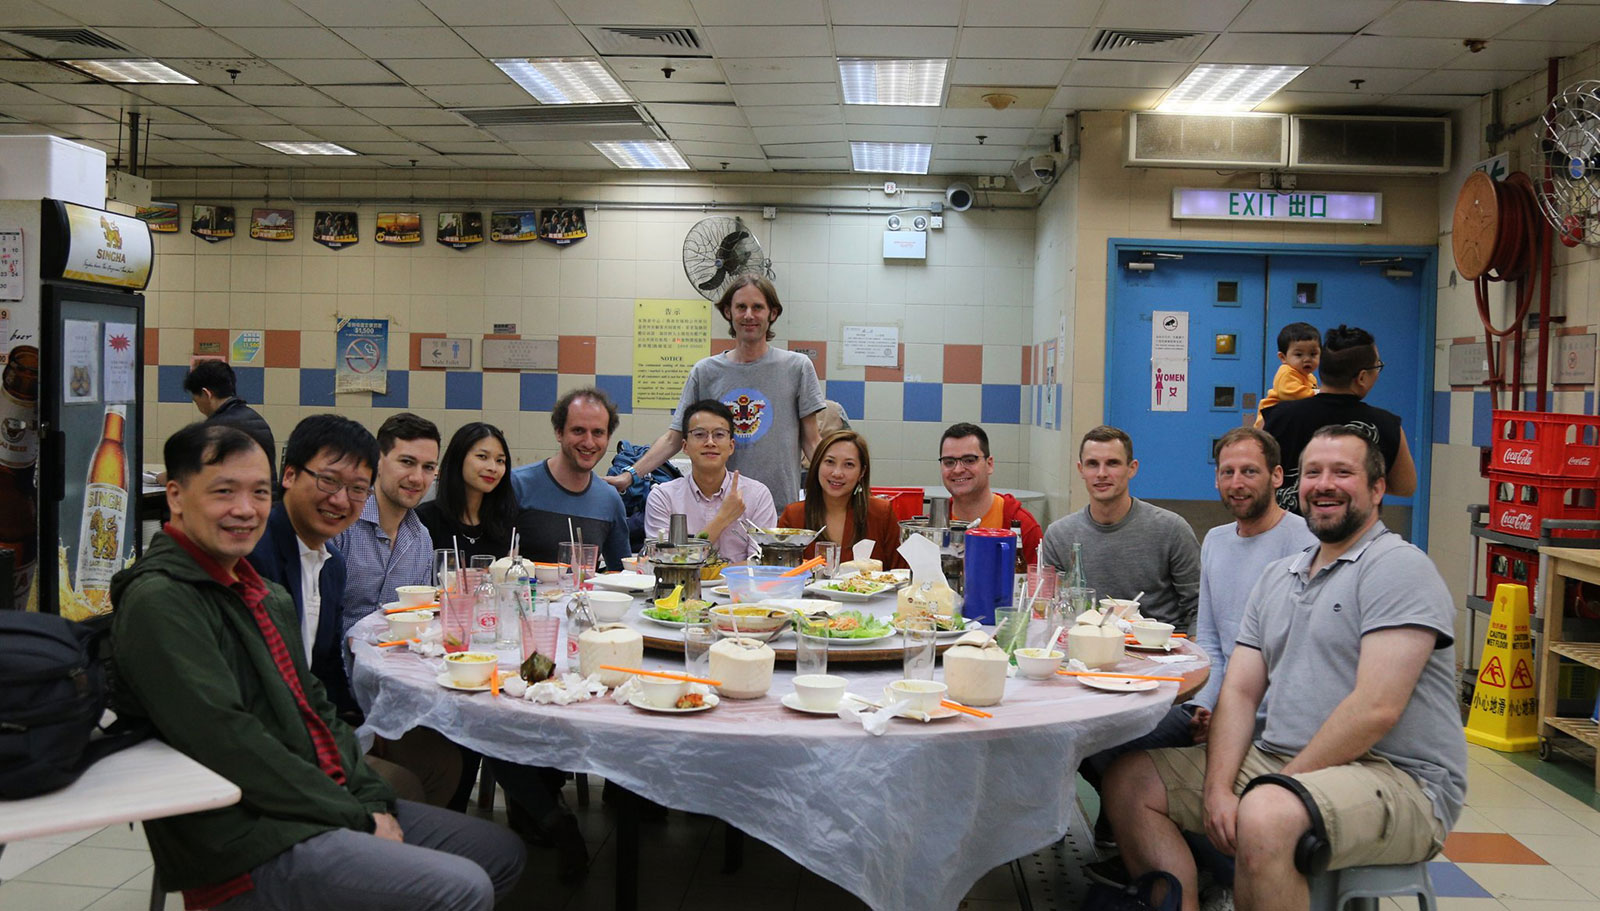 A group of people around a round table, smiling. The table has food on it and the setting is inside a food court.